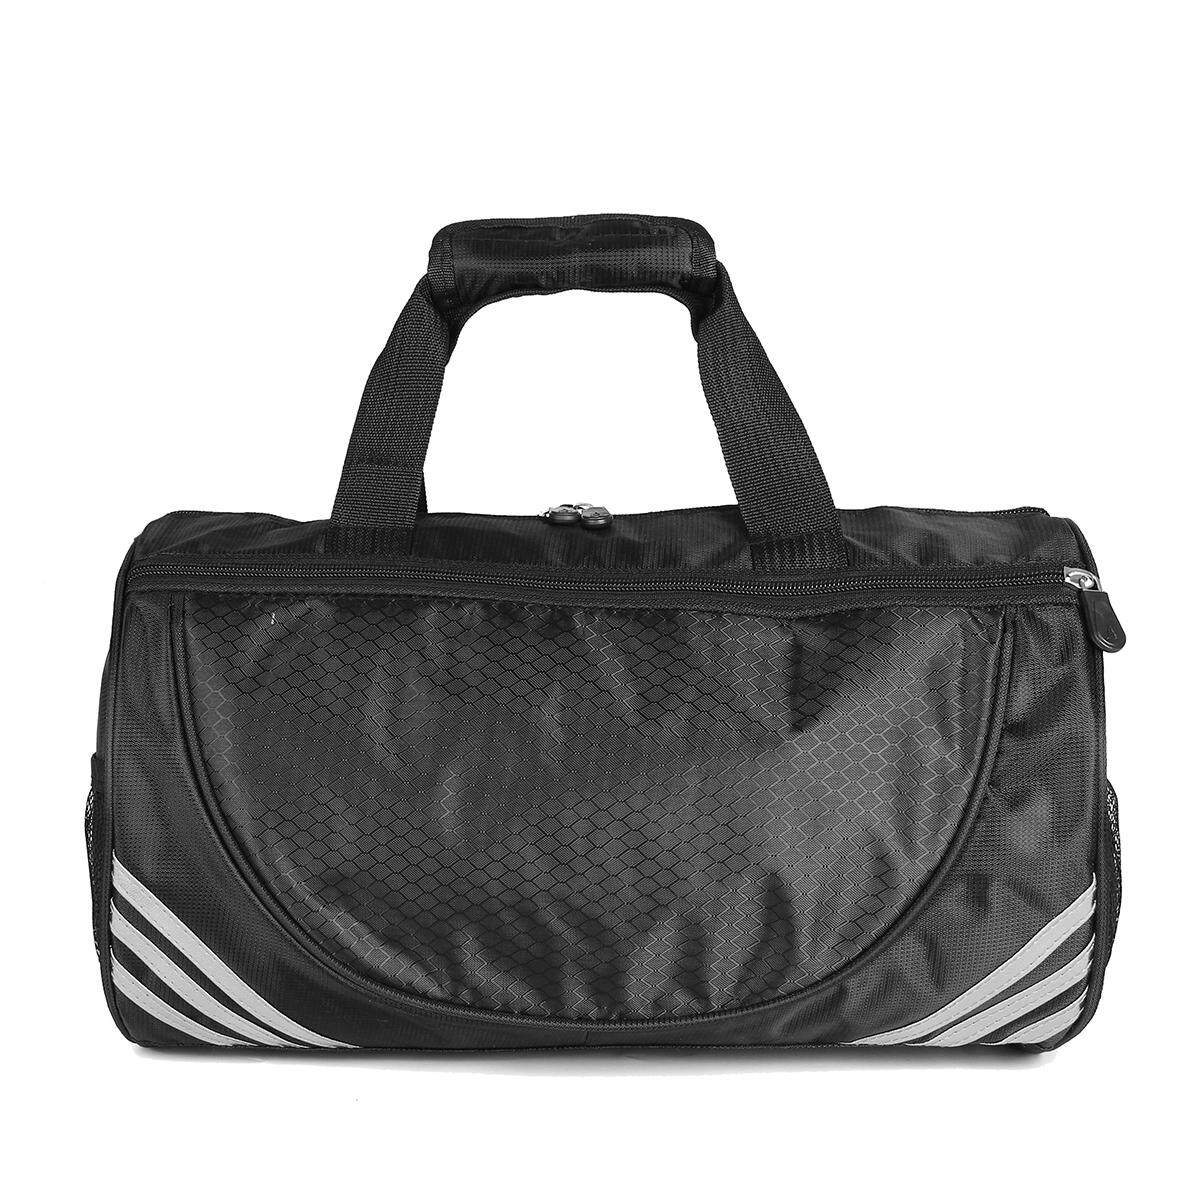 Sports Gym Travel Bags Yoga Bag Travel Duffle Bag Satchel Training Bags Backpack Silver 40x20x20cm - Intl By Channy.